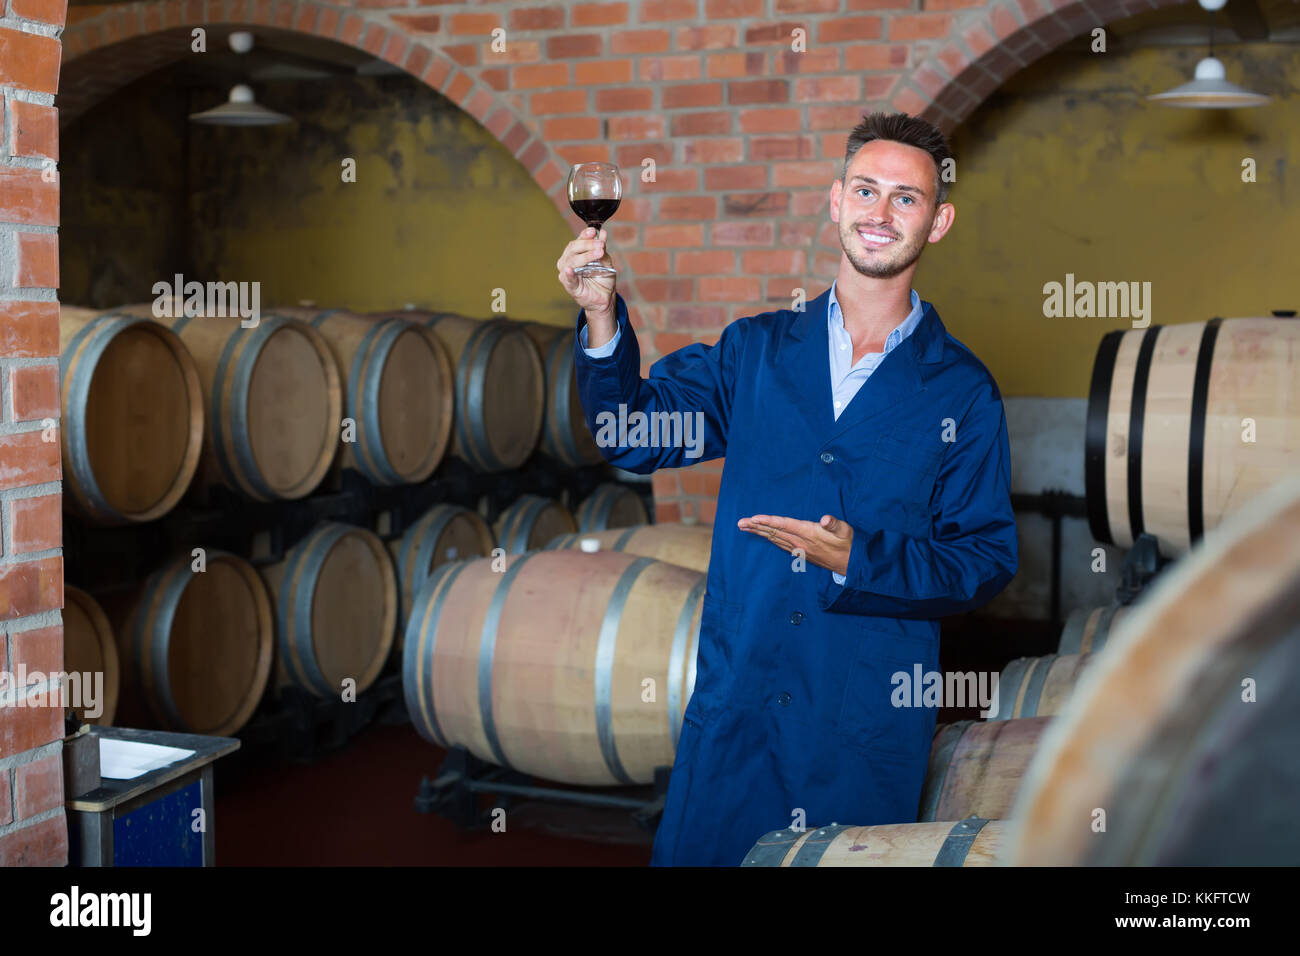 Young cheerful winery worker wearing coat holding glass of wine in cellar  sc 1 st  Alamy & Young cheerful winery worker wearing coat holding glass of wine in ...